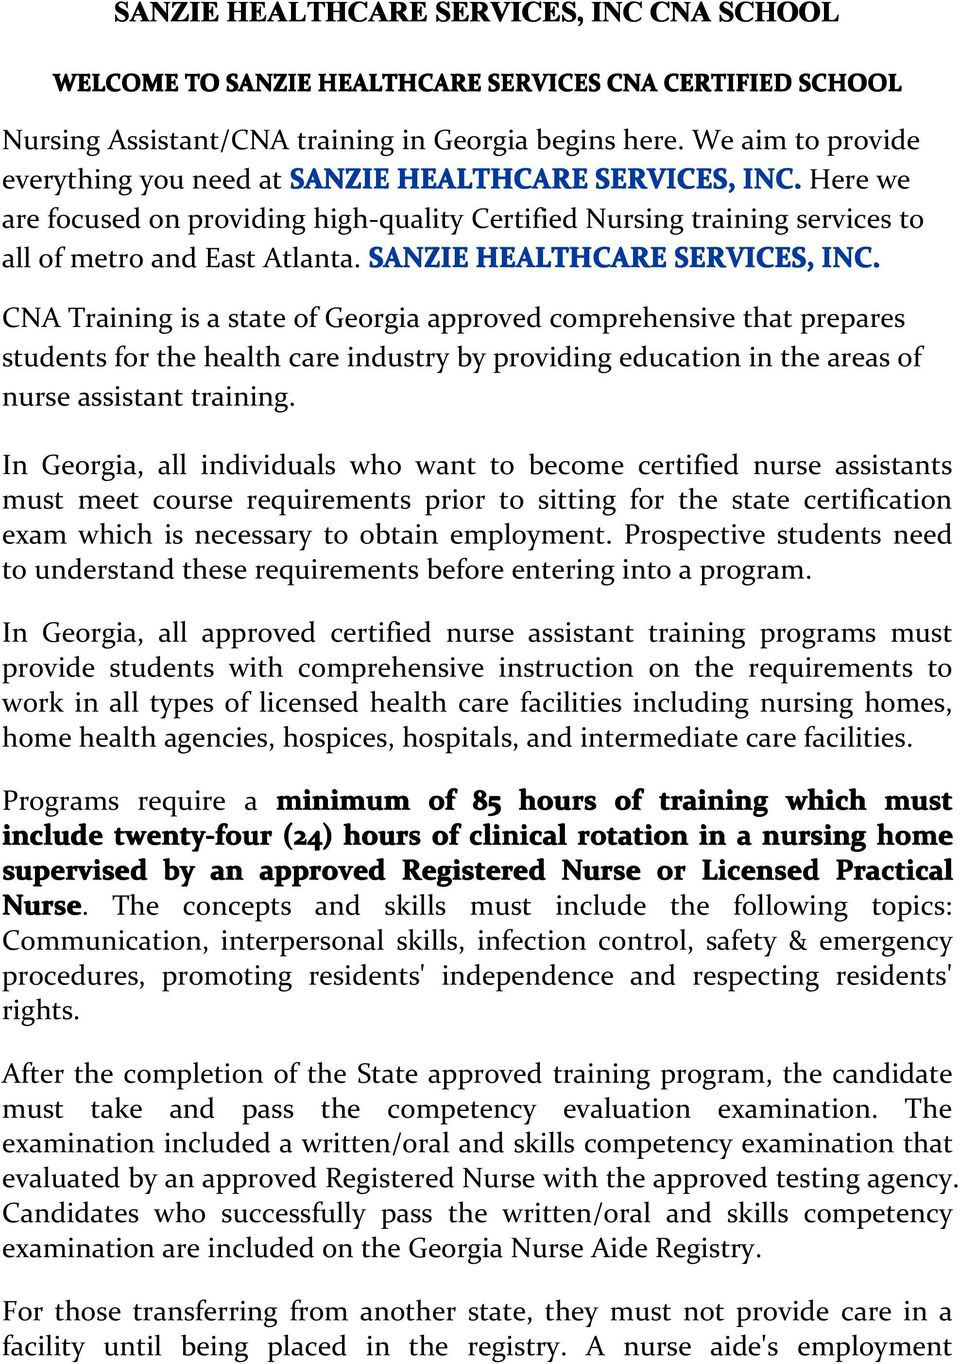 CNA Training is a state of Georgia approved comprehensive that prepares students for the health care industry by providing education in the areas of nurse assistant training.